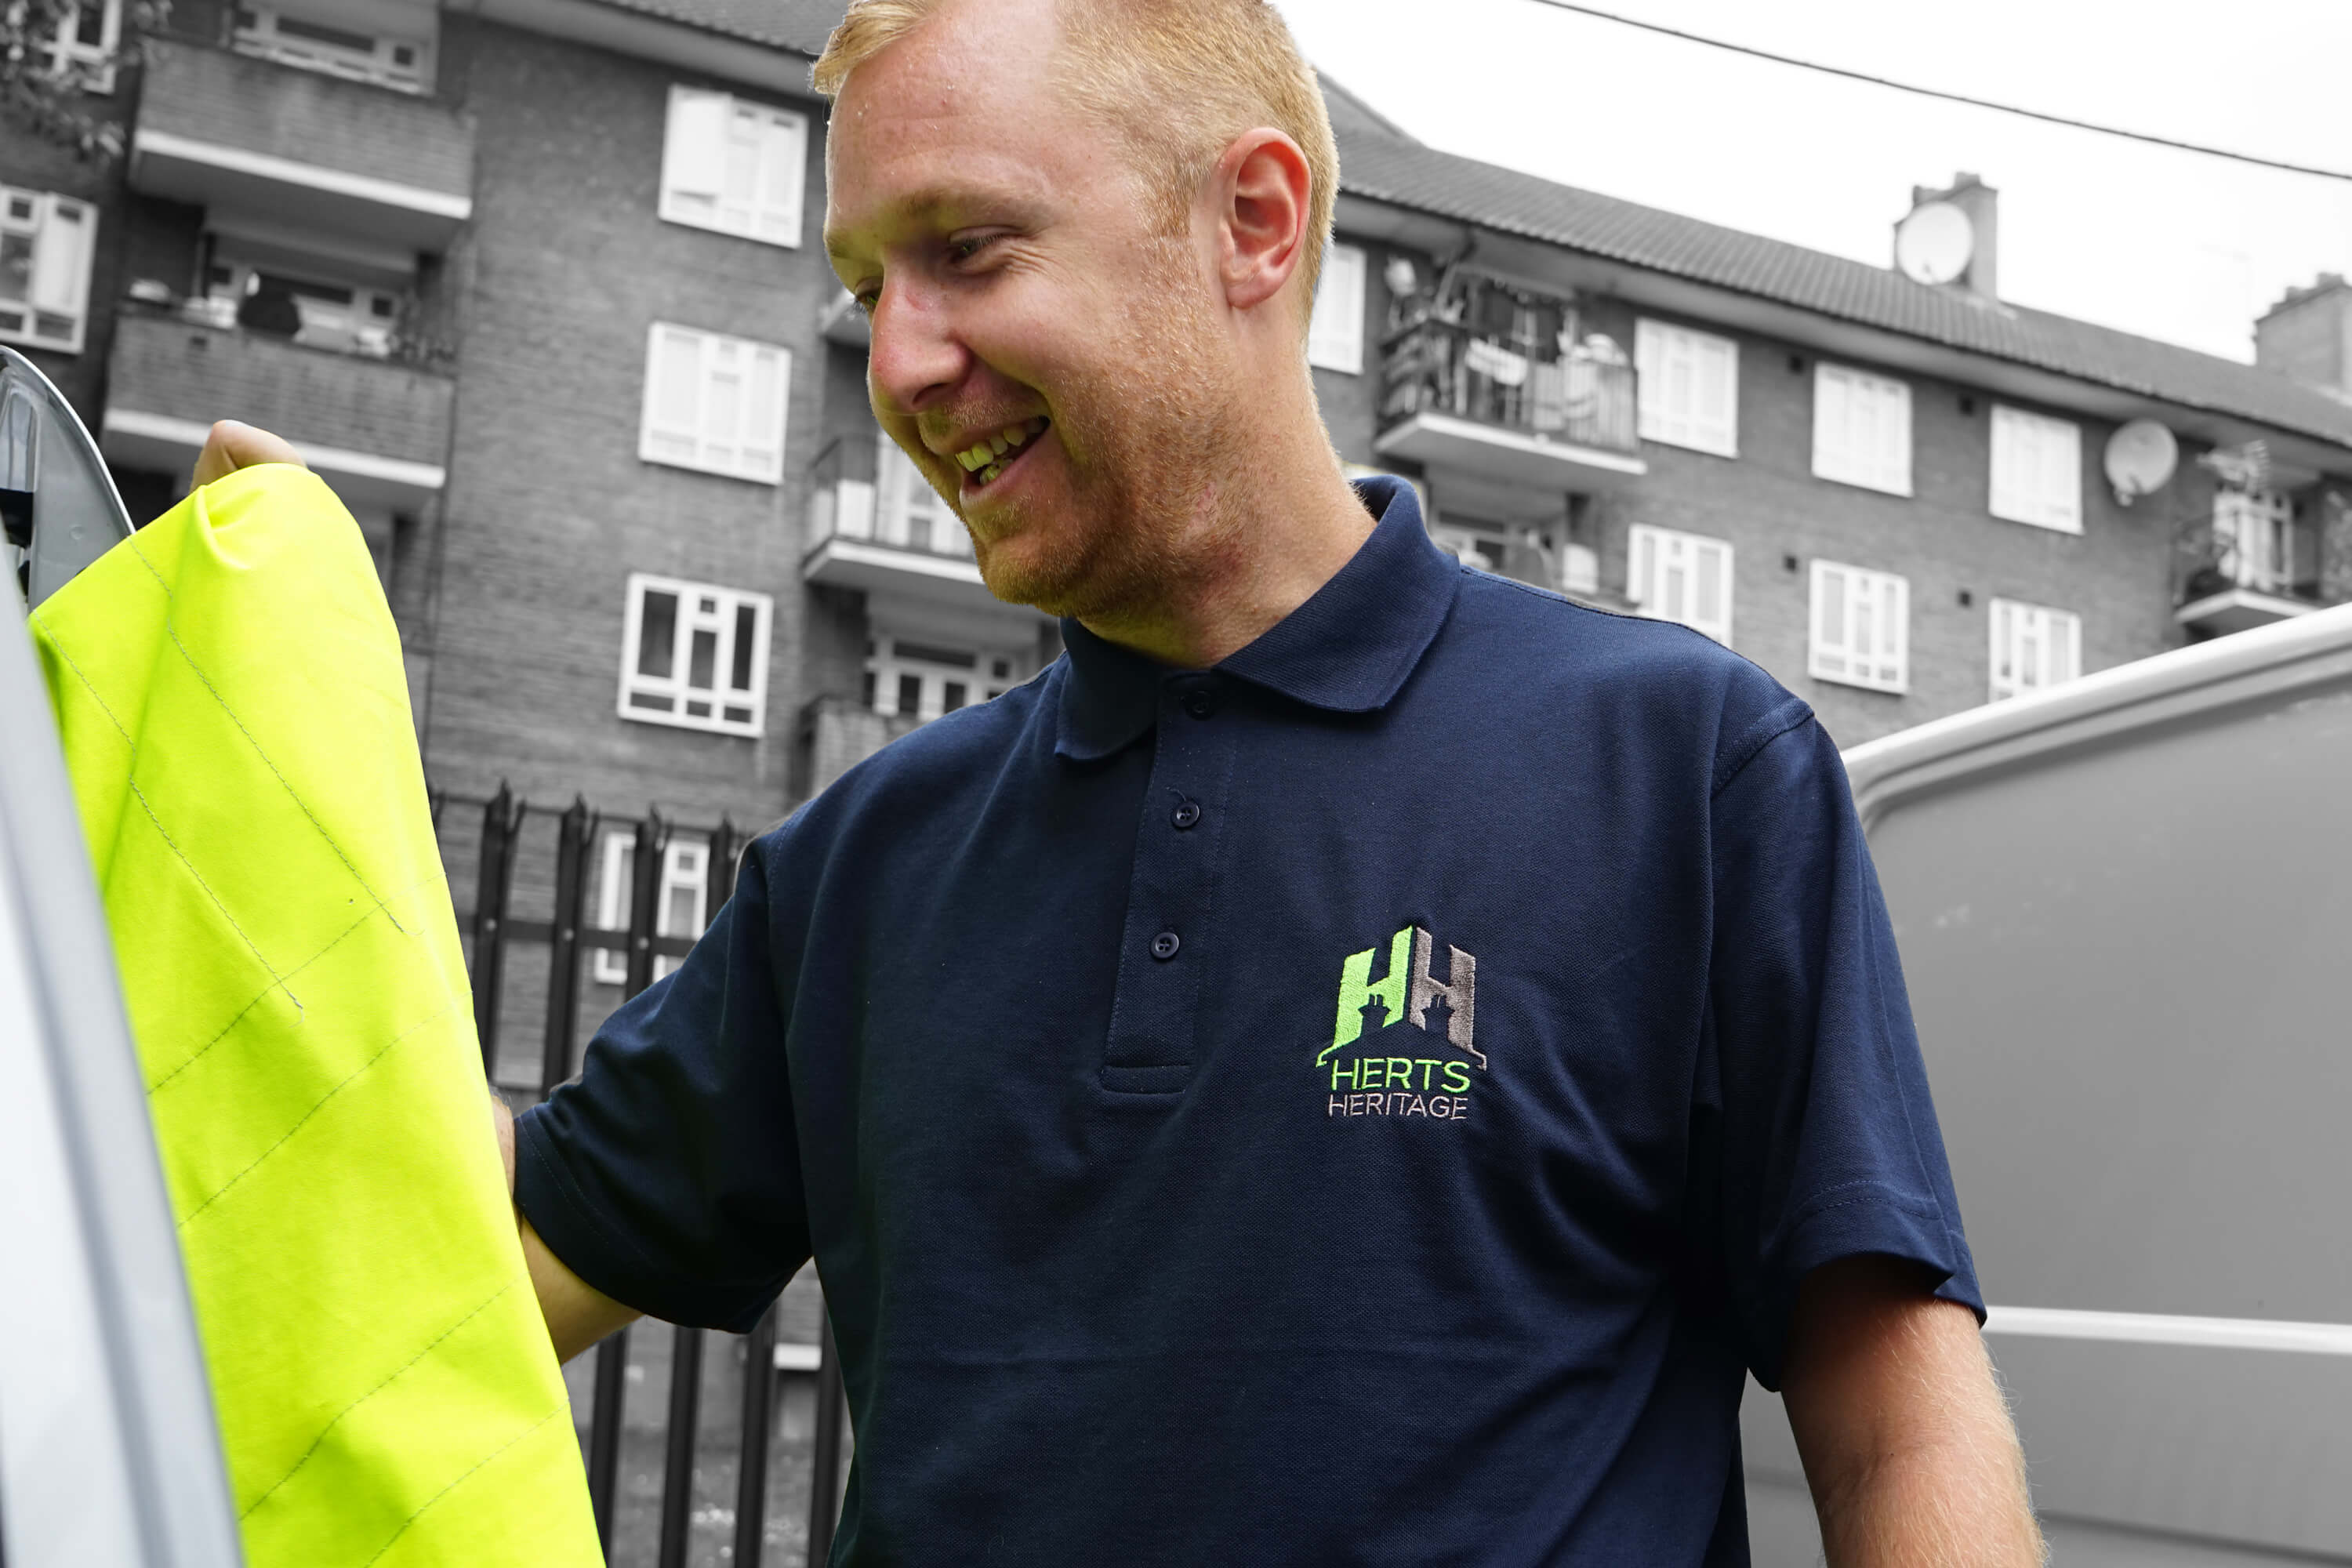 A Herts Heritage employee wearing a new shirt with Herts Heritage rebrand design